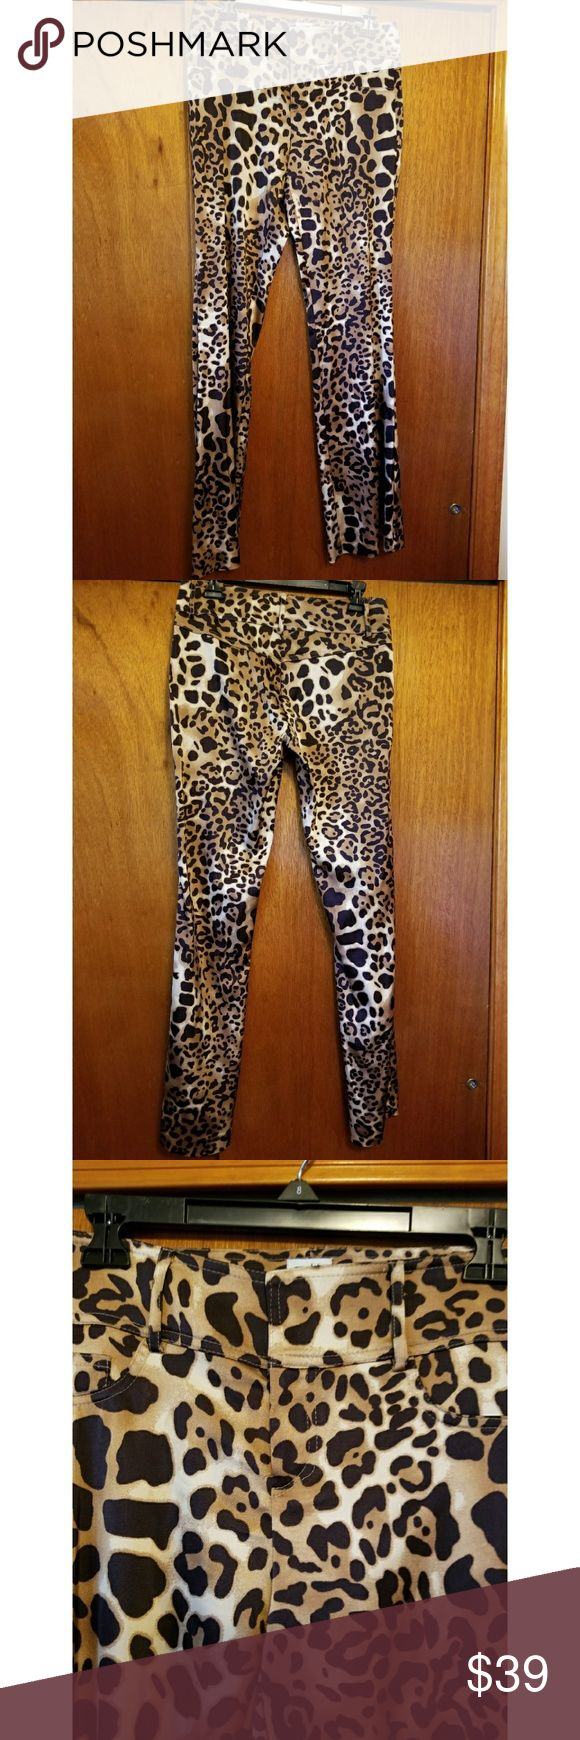 Weekend sale thru 6/4. Cache Leopard pants Brown leopard stretchy, fitted bootleg pants. Very sexy. Wore twice. No damage. Make offer. Cache Pants Boot Cut & Flare